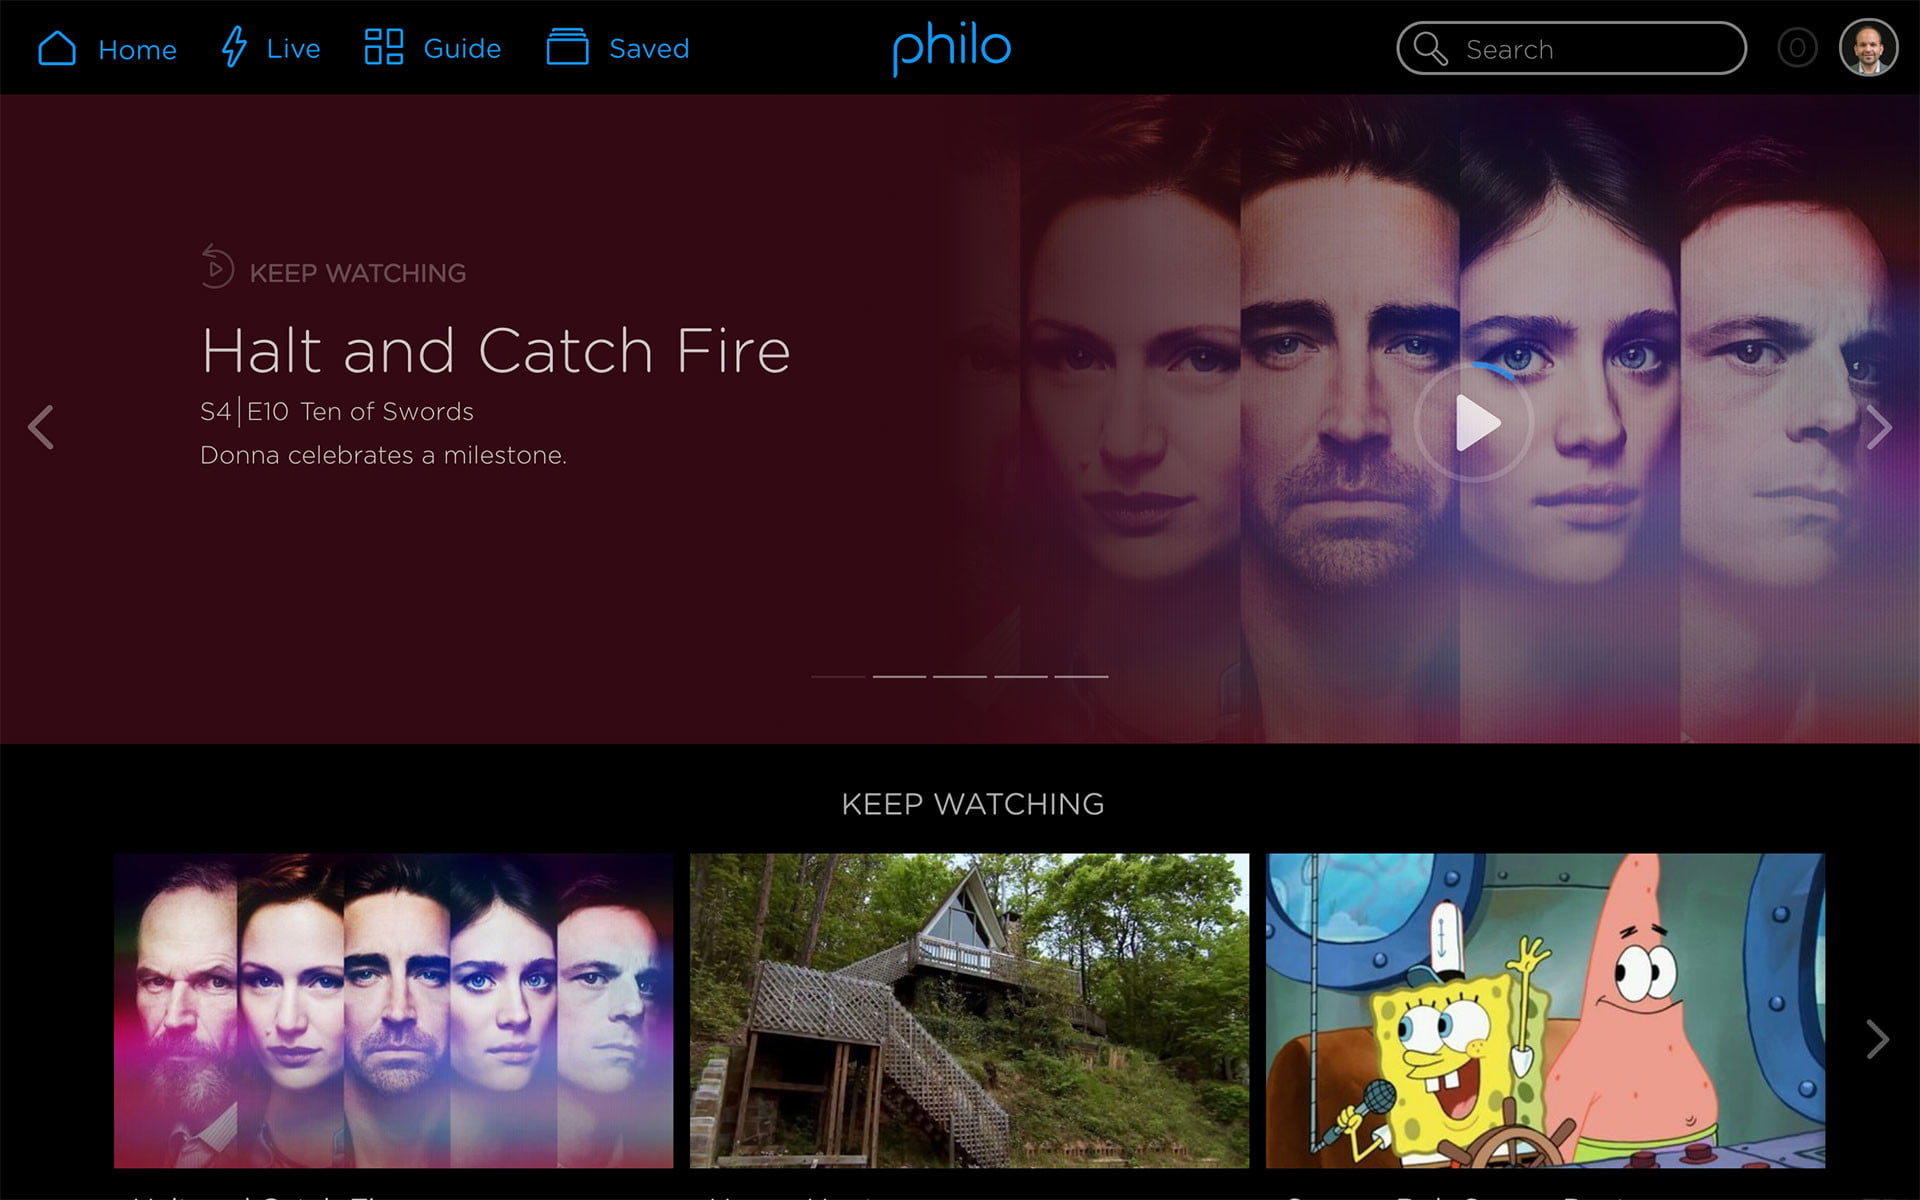 philo tv channels pricing features home page top